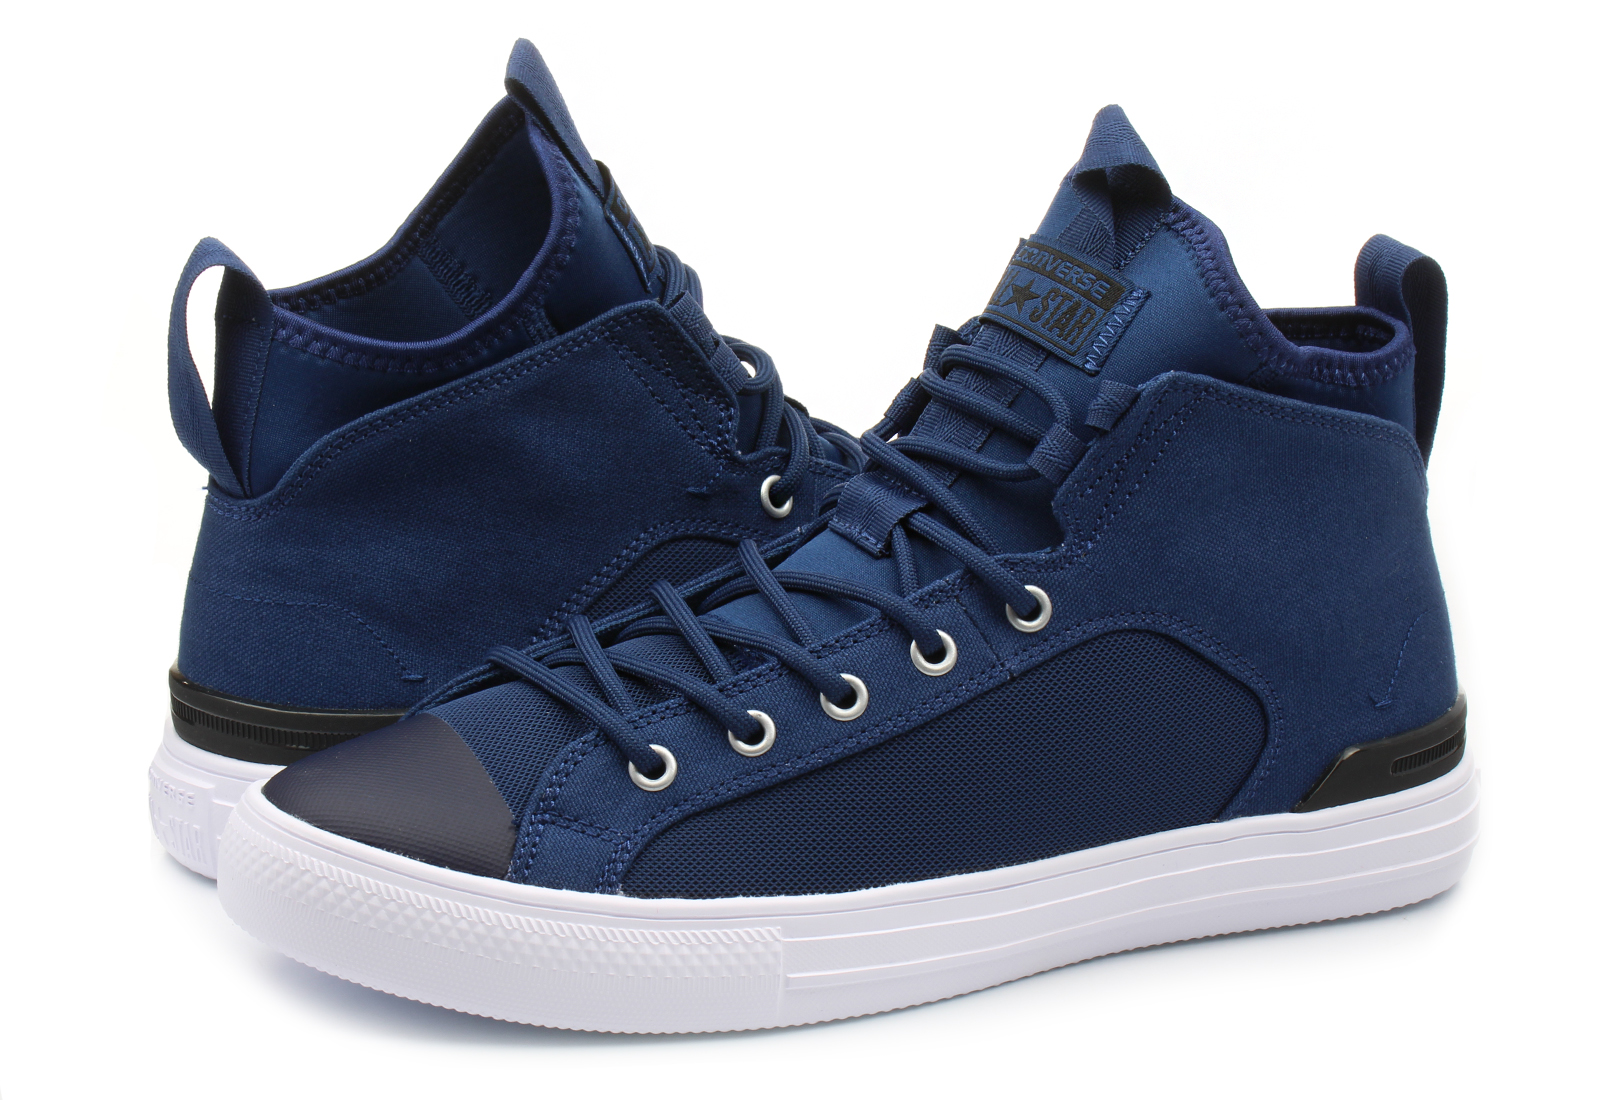 Converse Shoes Ct As Ultra Mid 159631c Online Shop